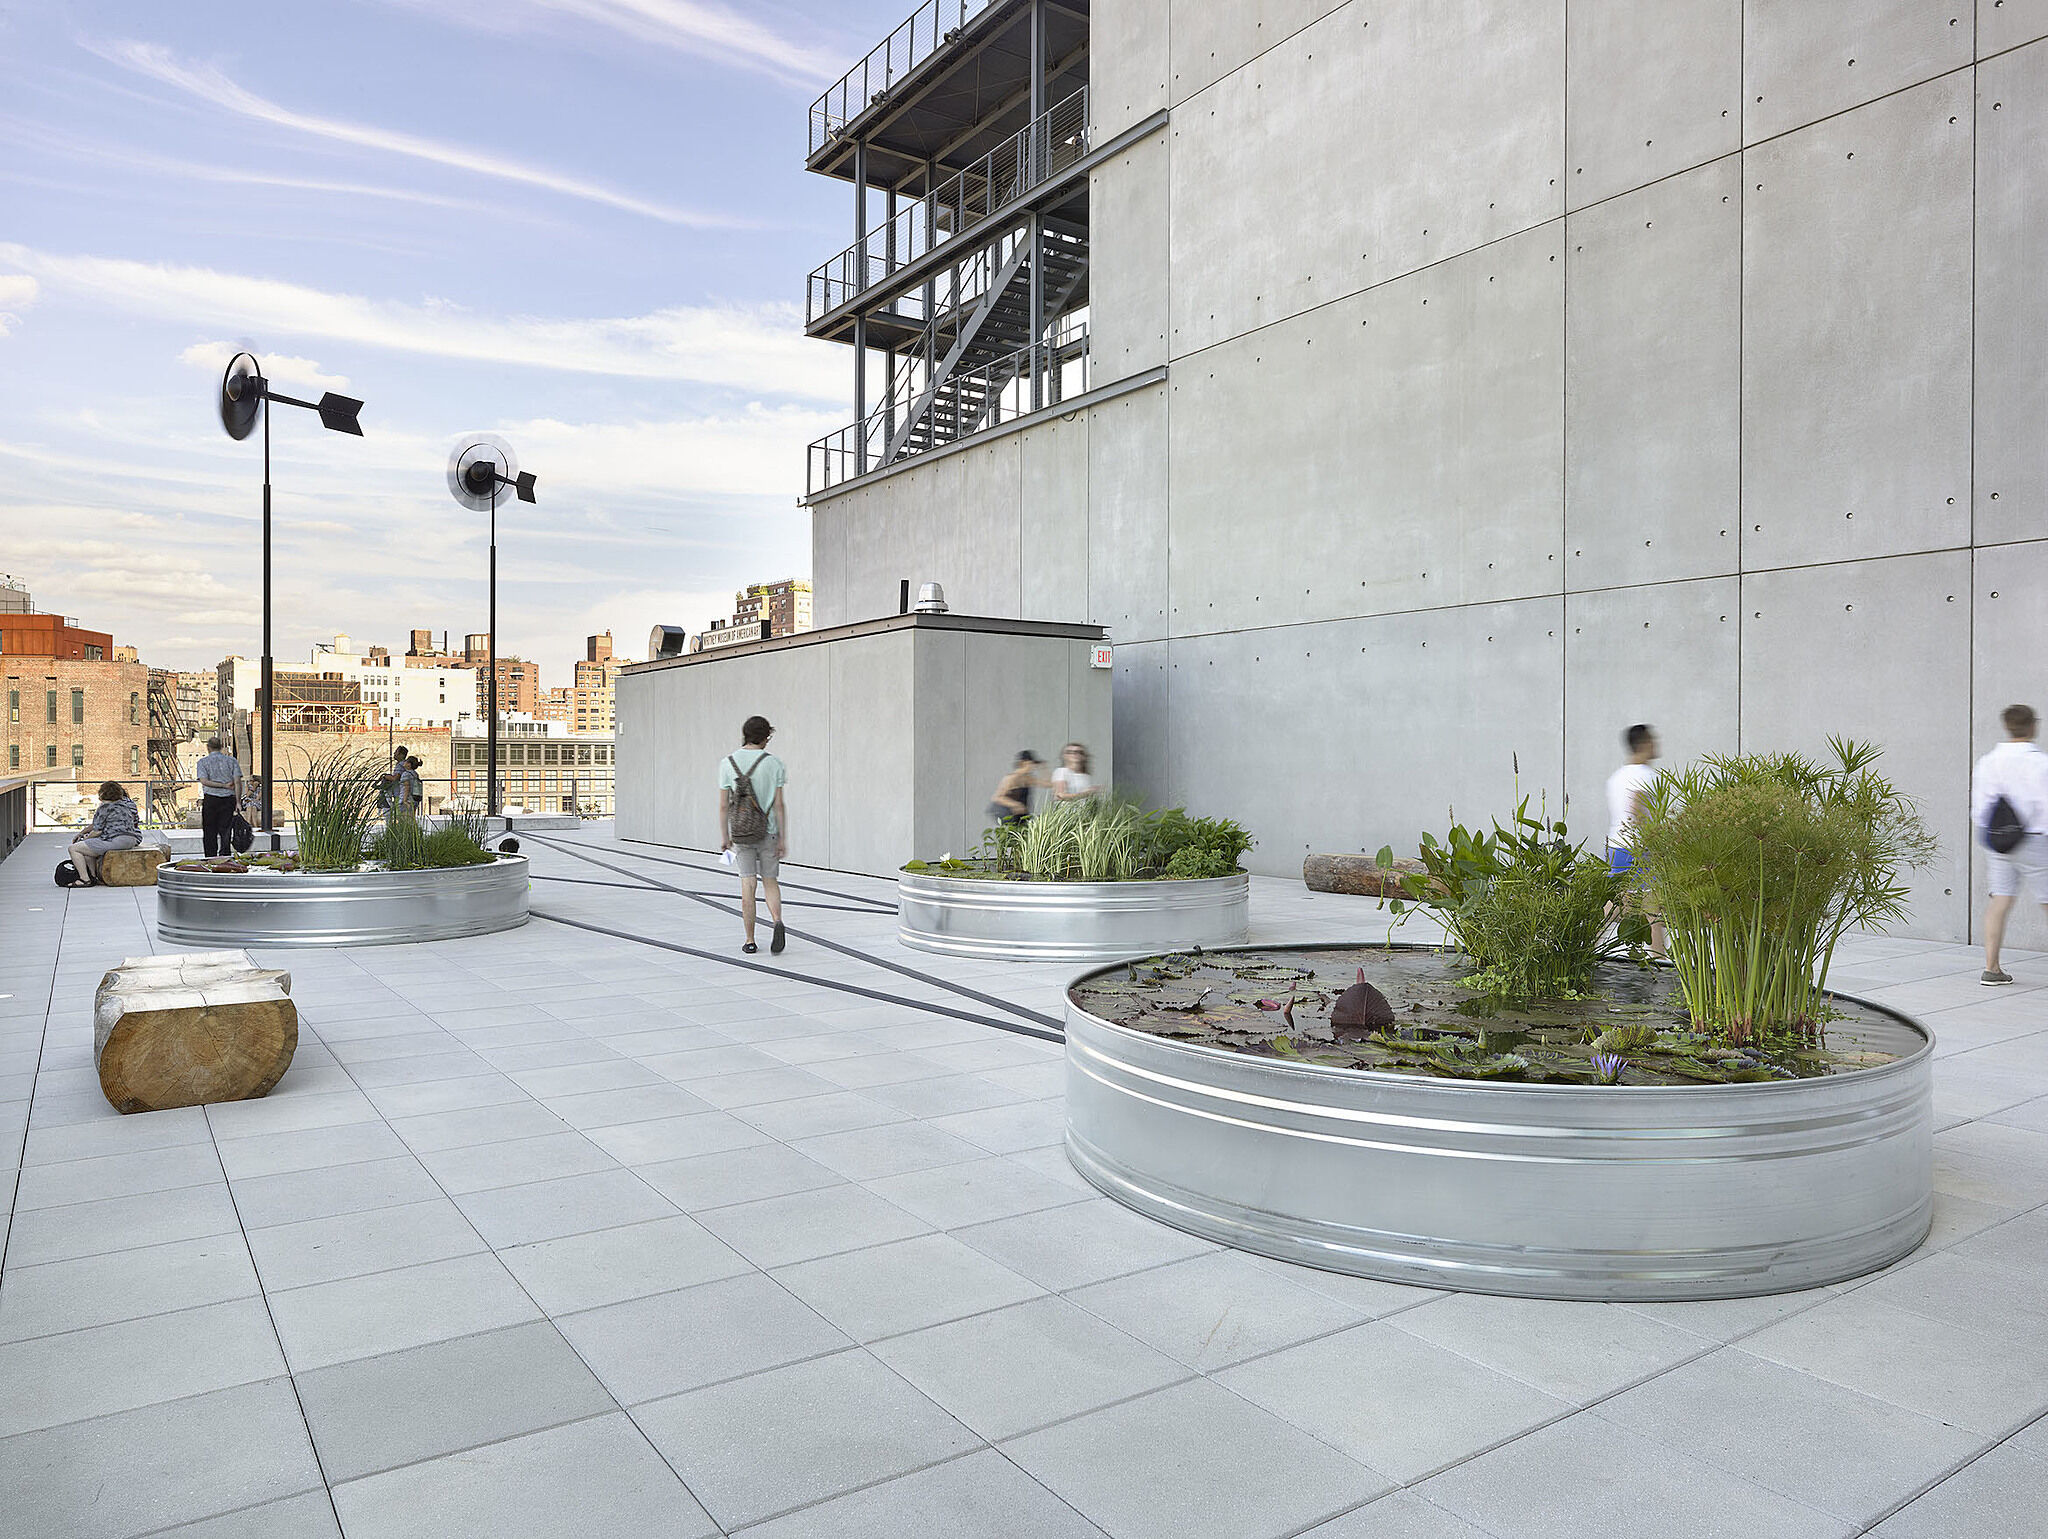 Virginia Overton's garden artwork installed on an outdoor terrace of the Whitney Museum.